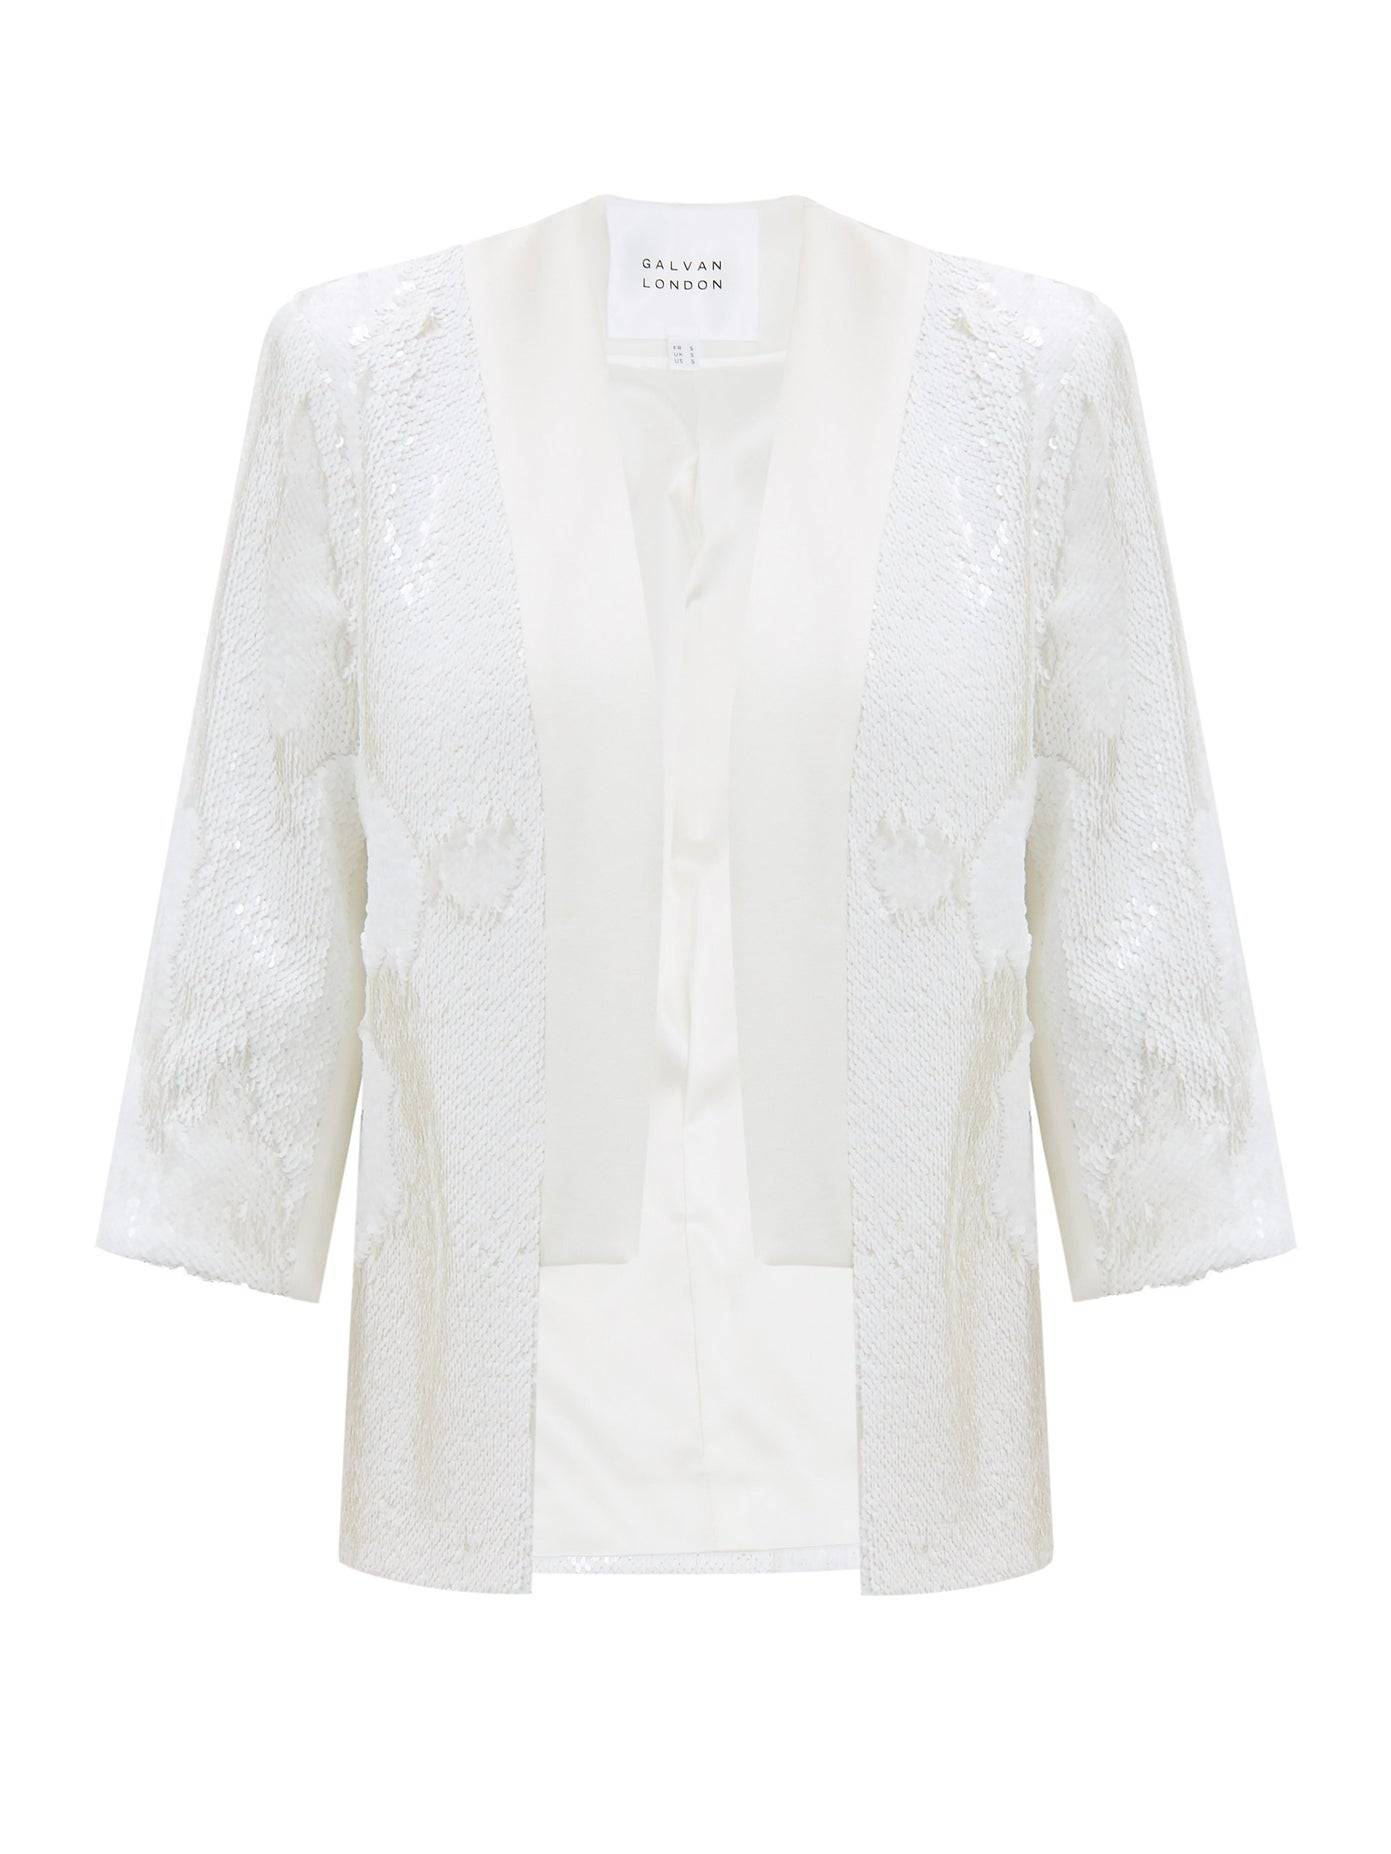 Galvan London Bridal Sequin White Jacket